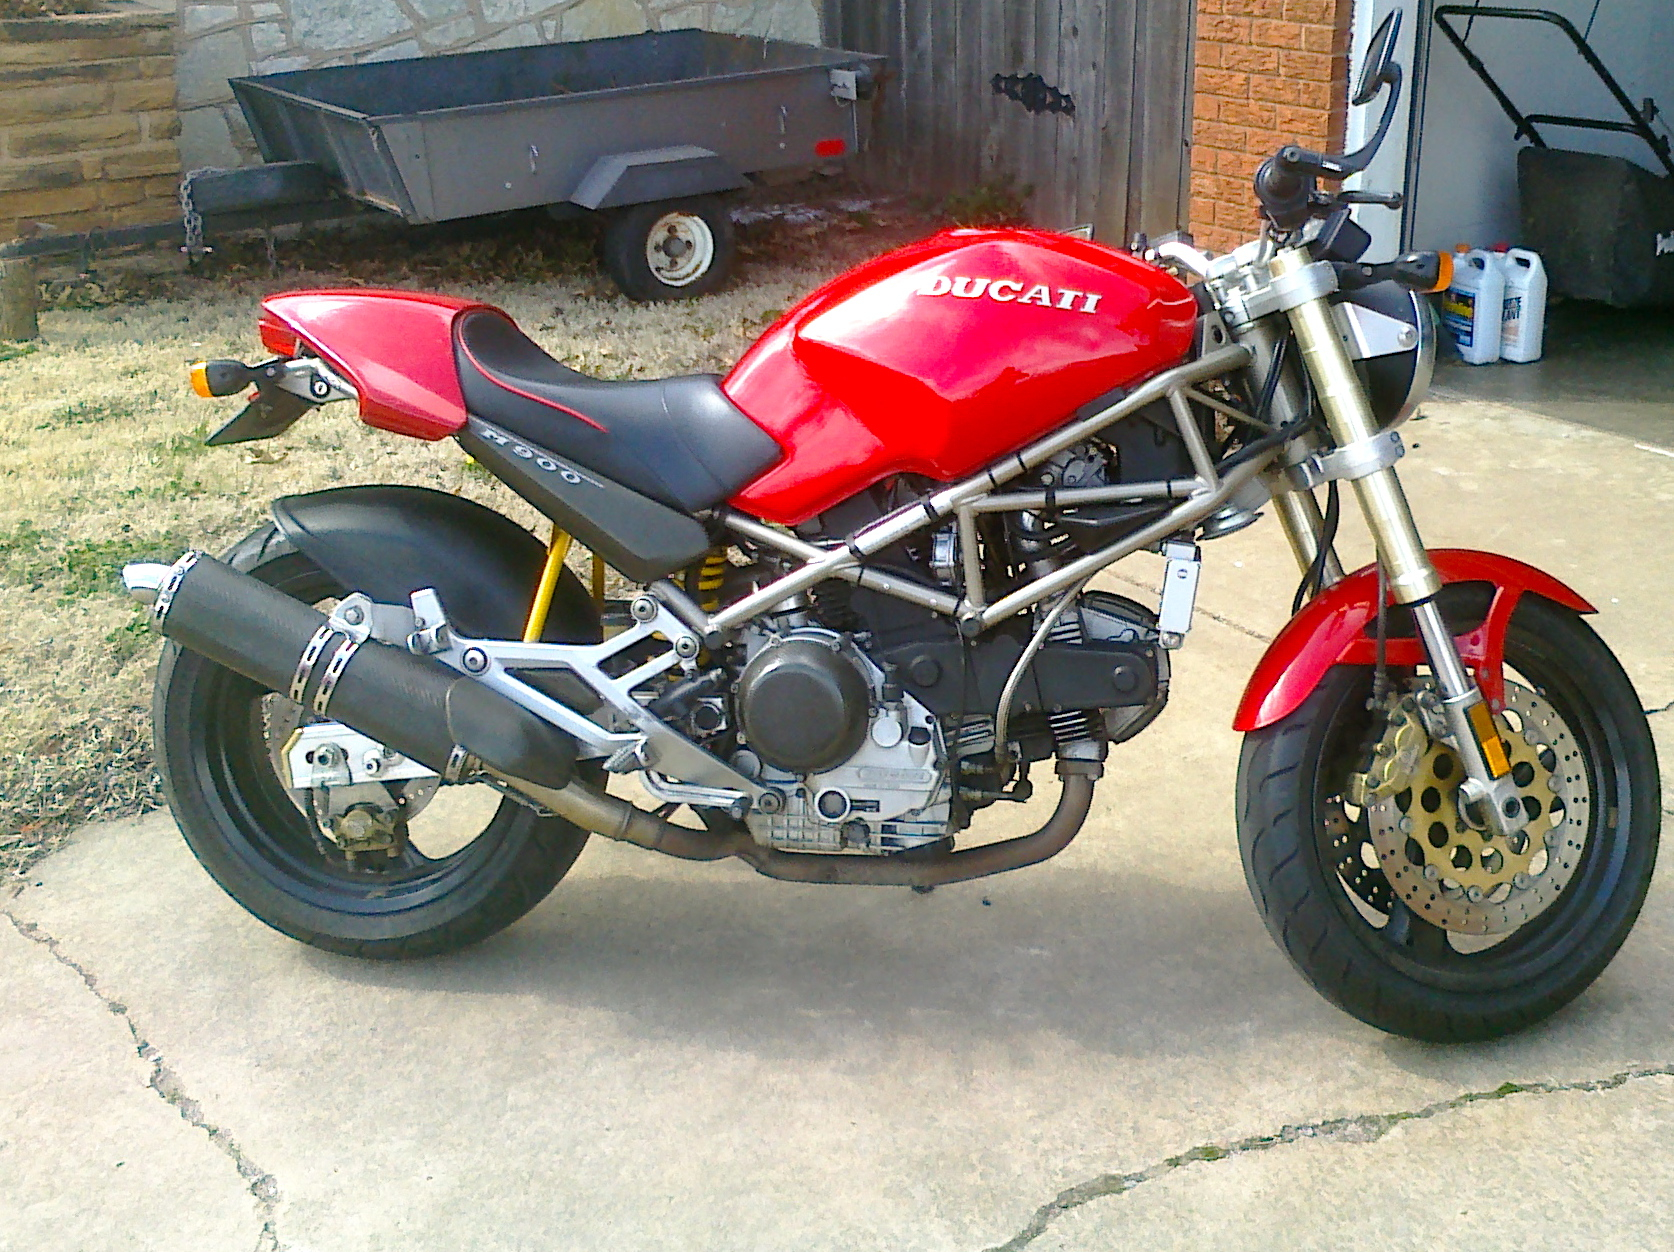 Ducati 900 SS 1994 images #78848